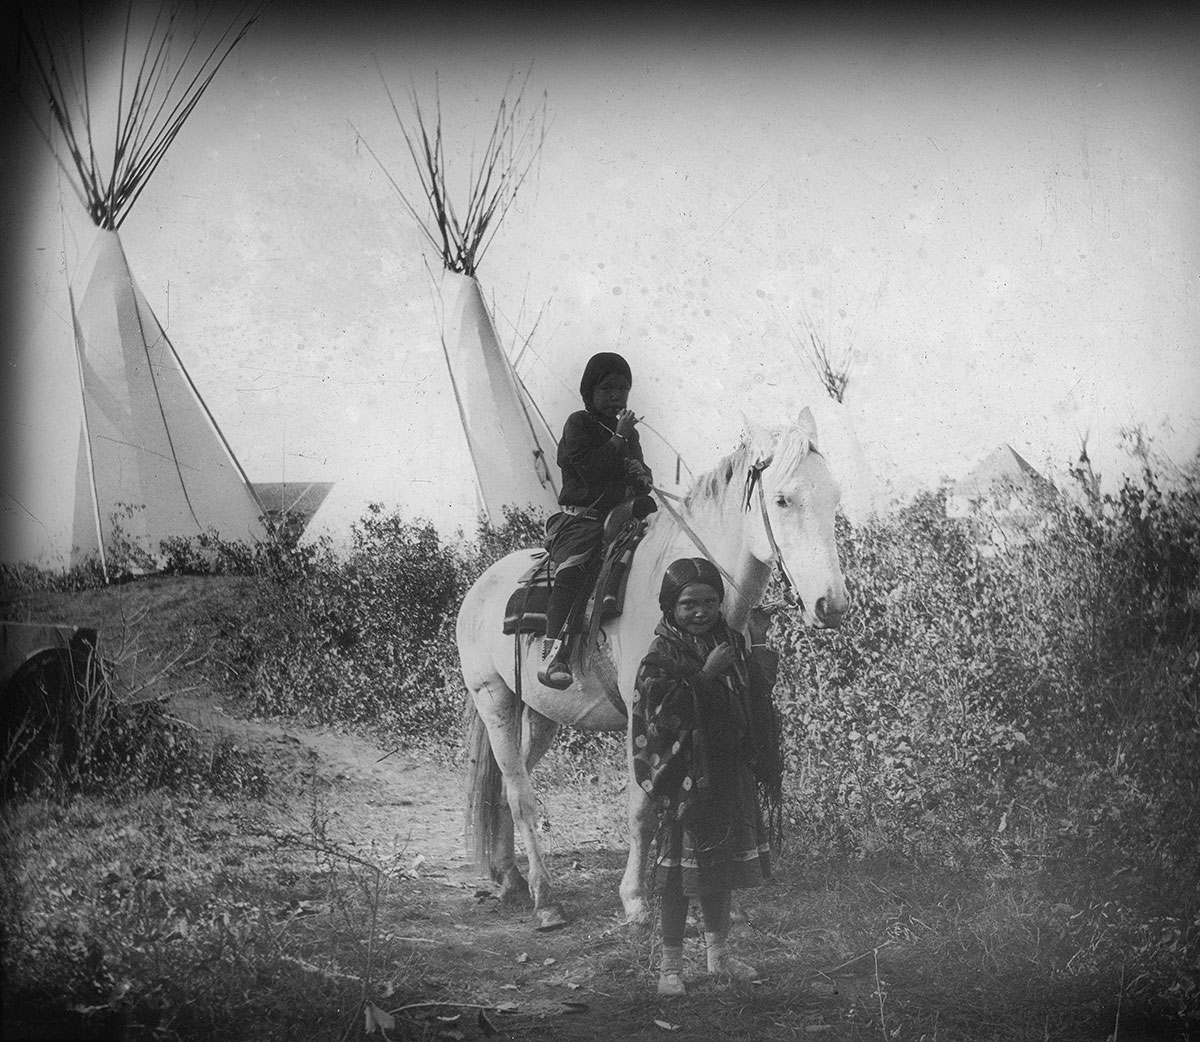 Crow children on horseback, ca. 1903–1925. MS 95 William A. Petzoldt Lantern Slide Collection. LS.95.385